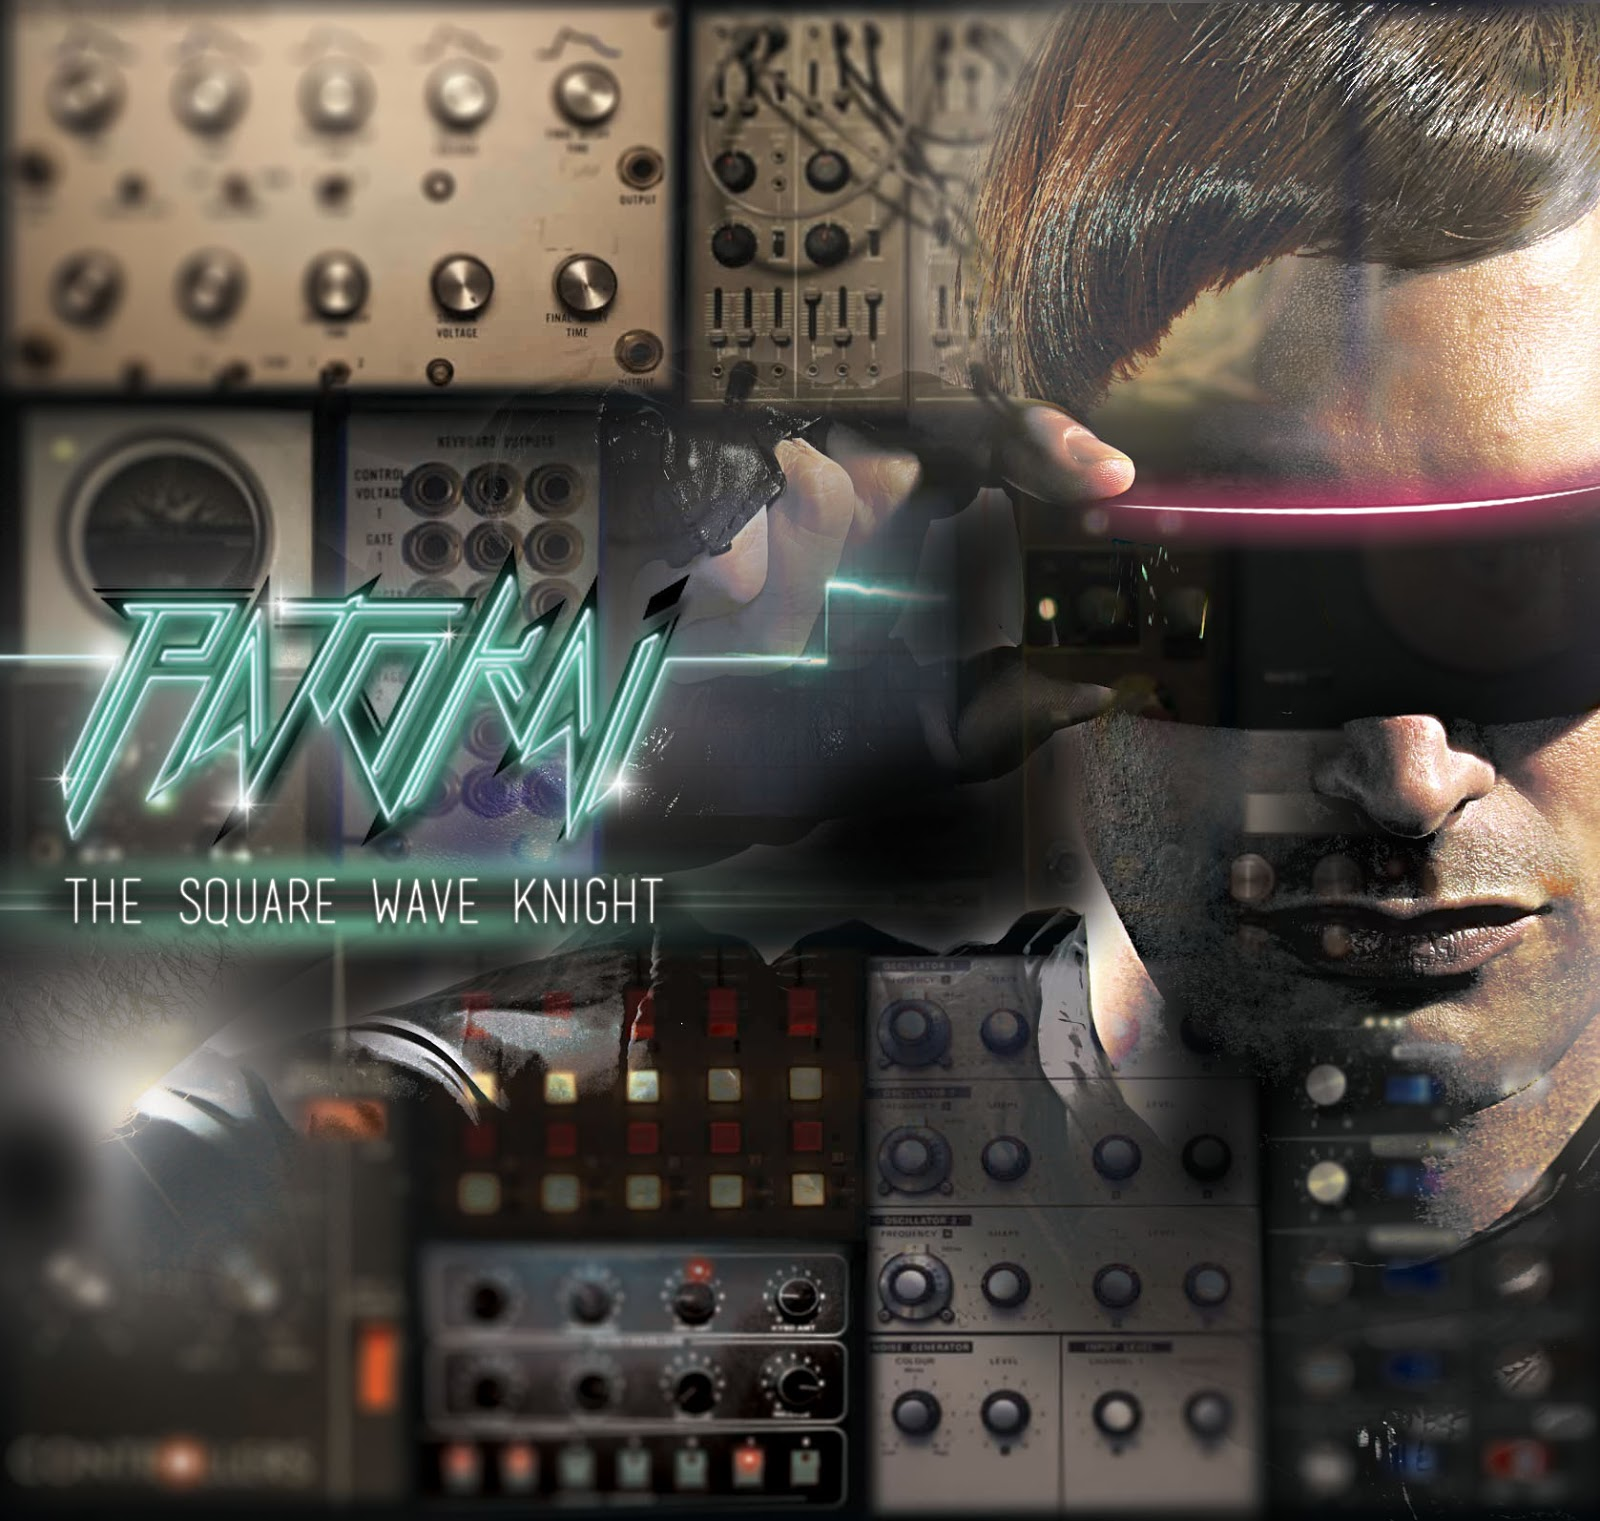 http://soundcloud.com/patokai/sets/the-square-wave-knight-2014